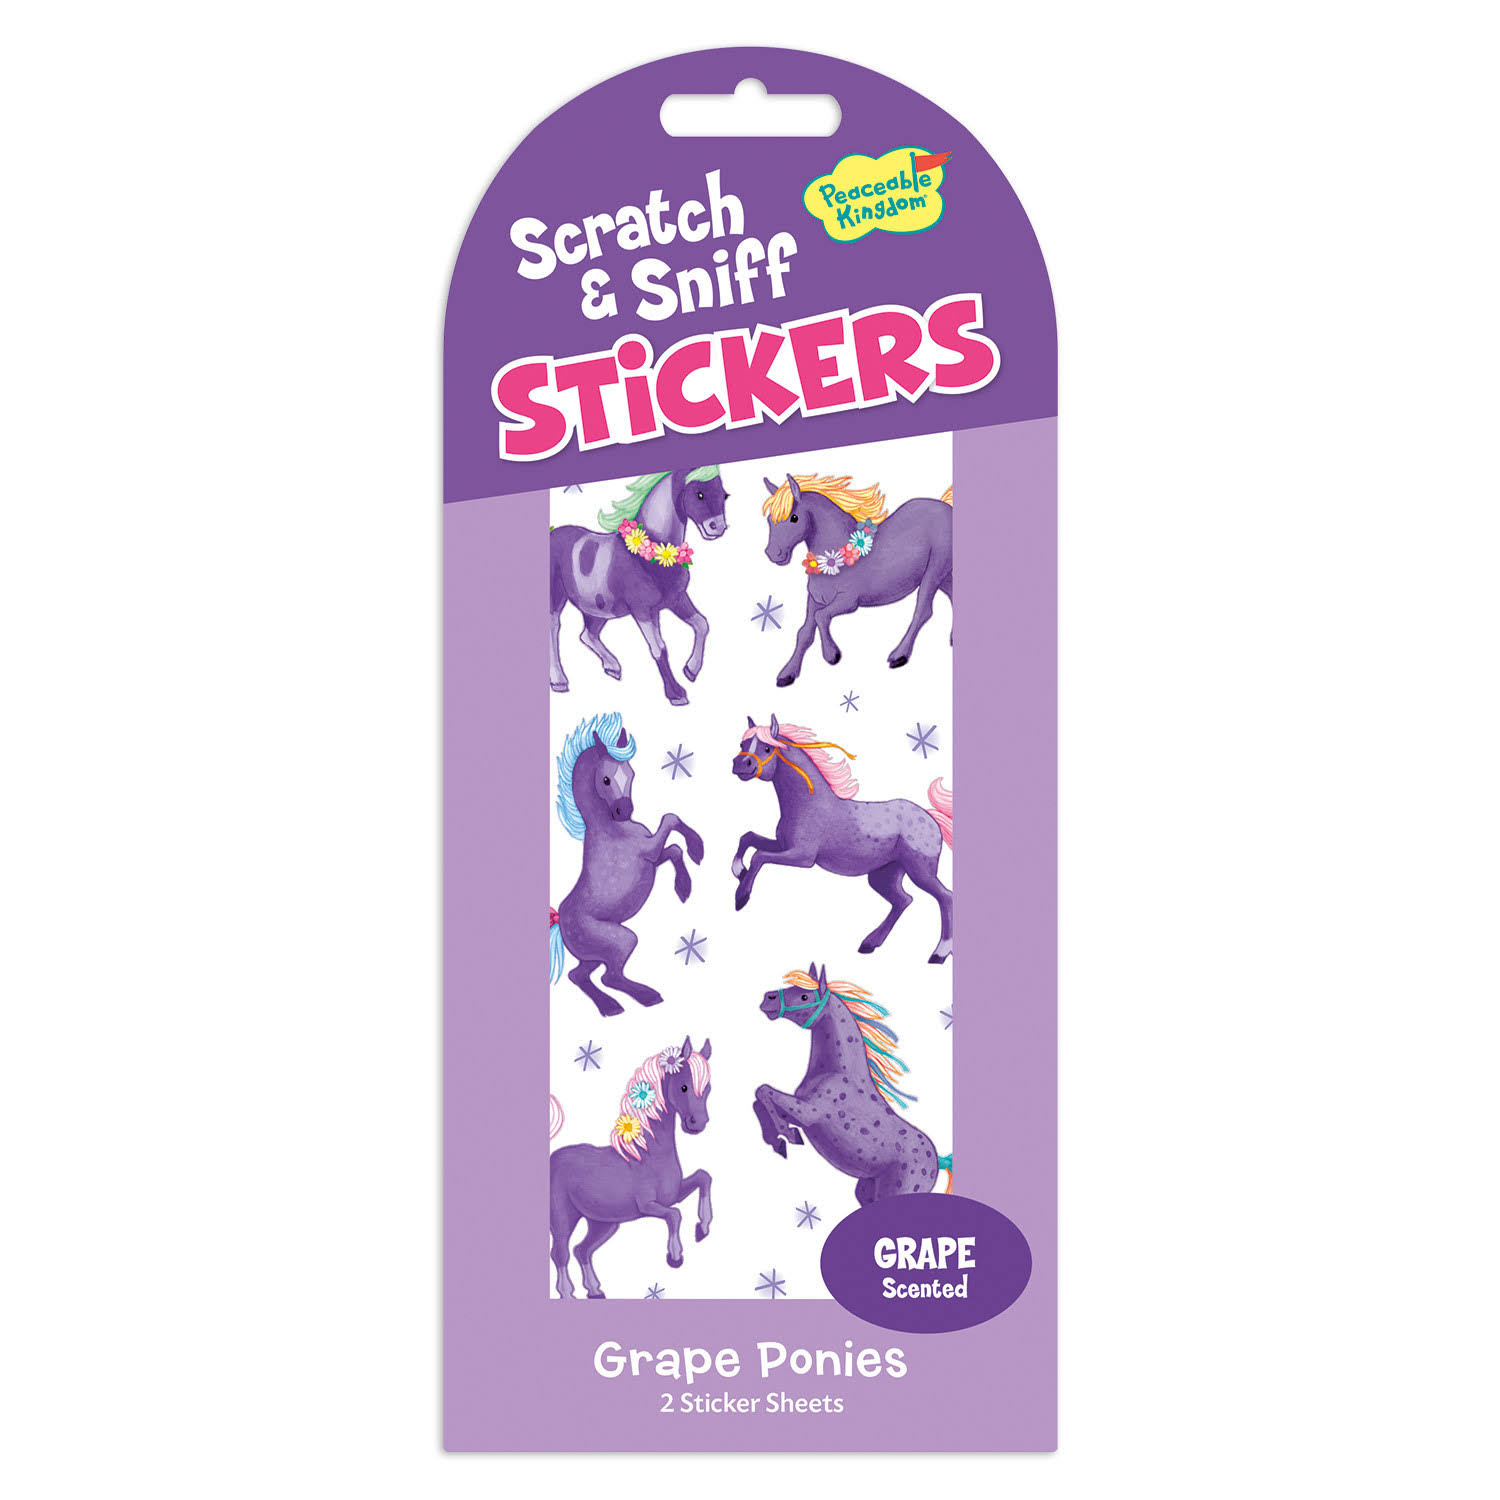 Peaceable Kingdom Scratch & Sniff Stickers Grape Ponies Stickers